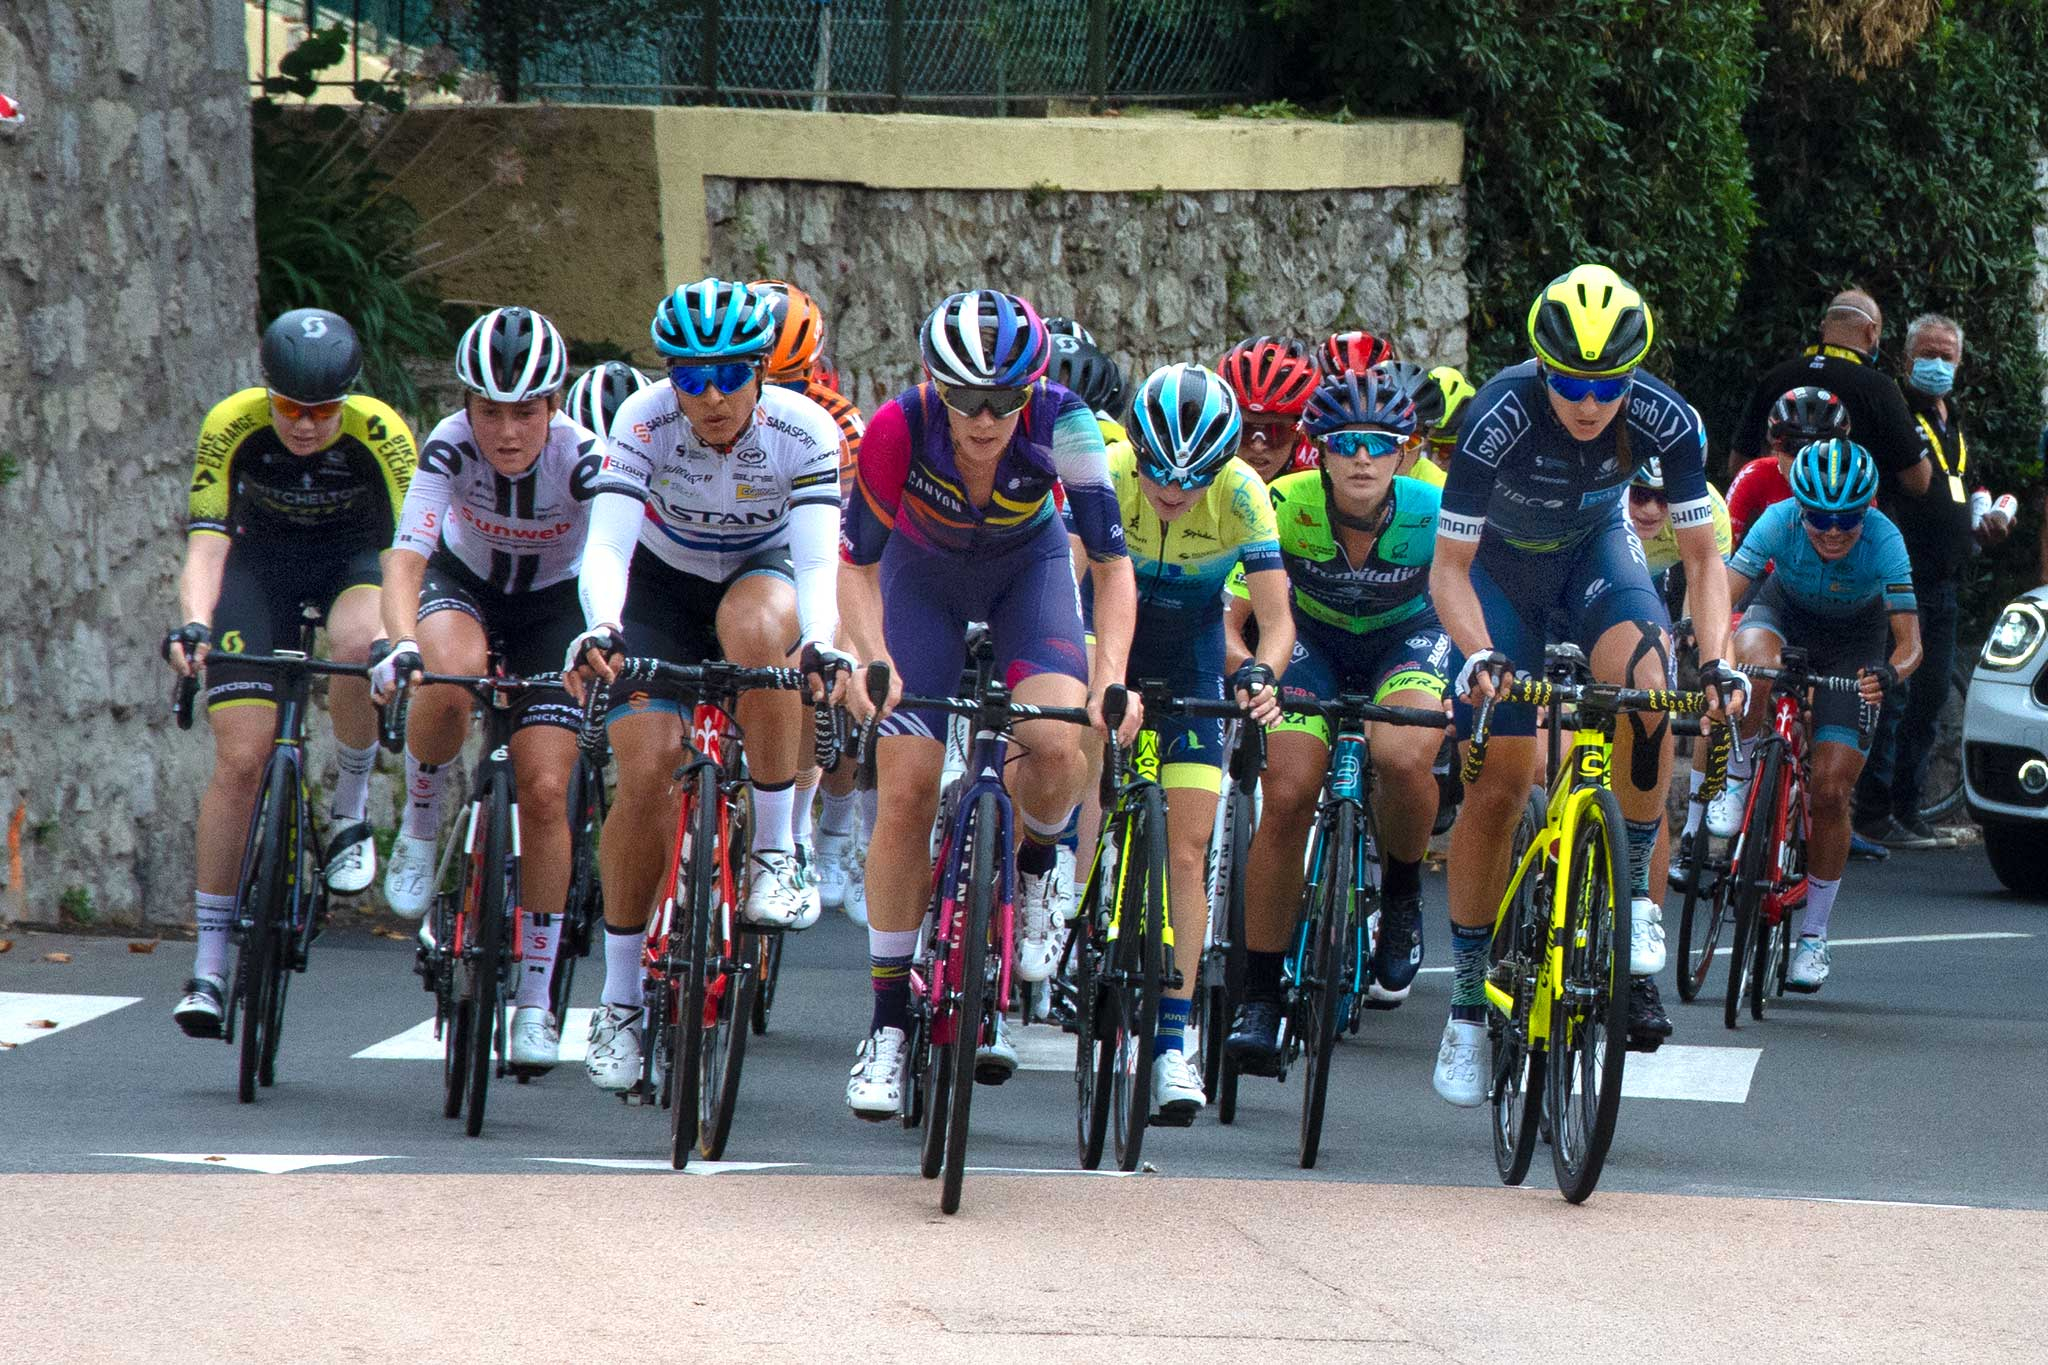 Steve and Carole in Vence - Women And The Tour de France